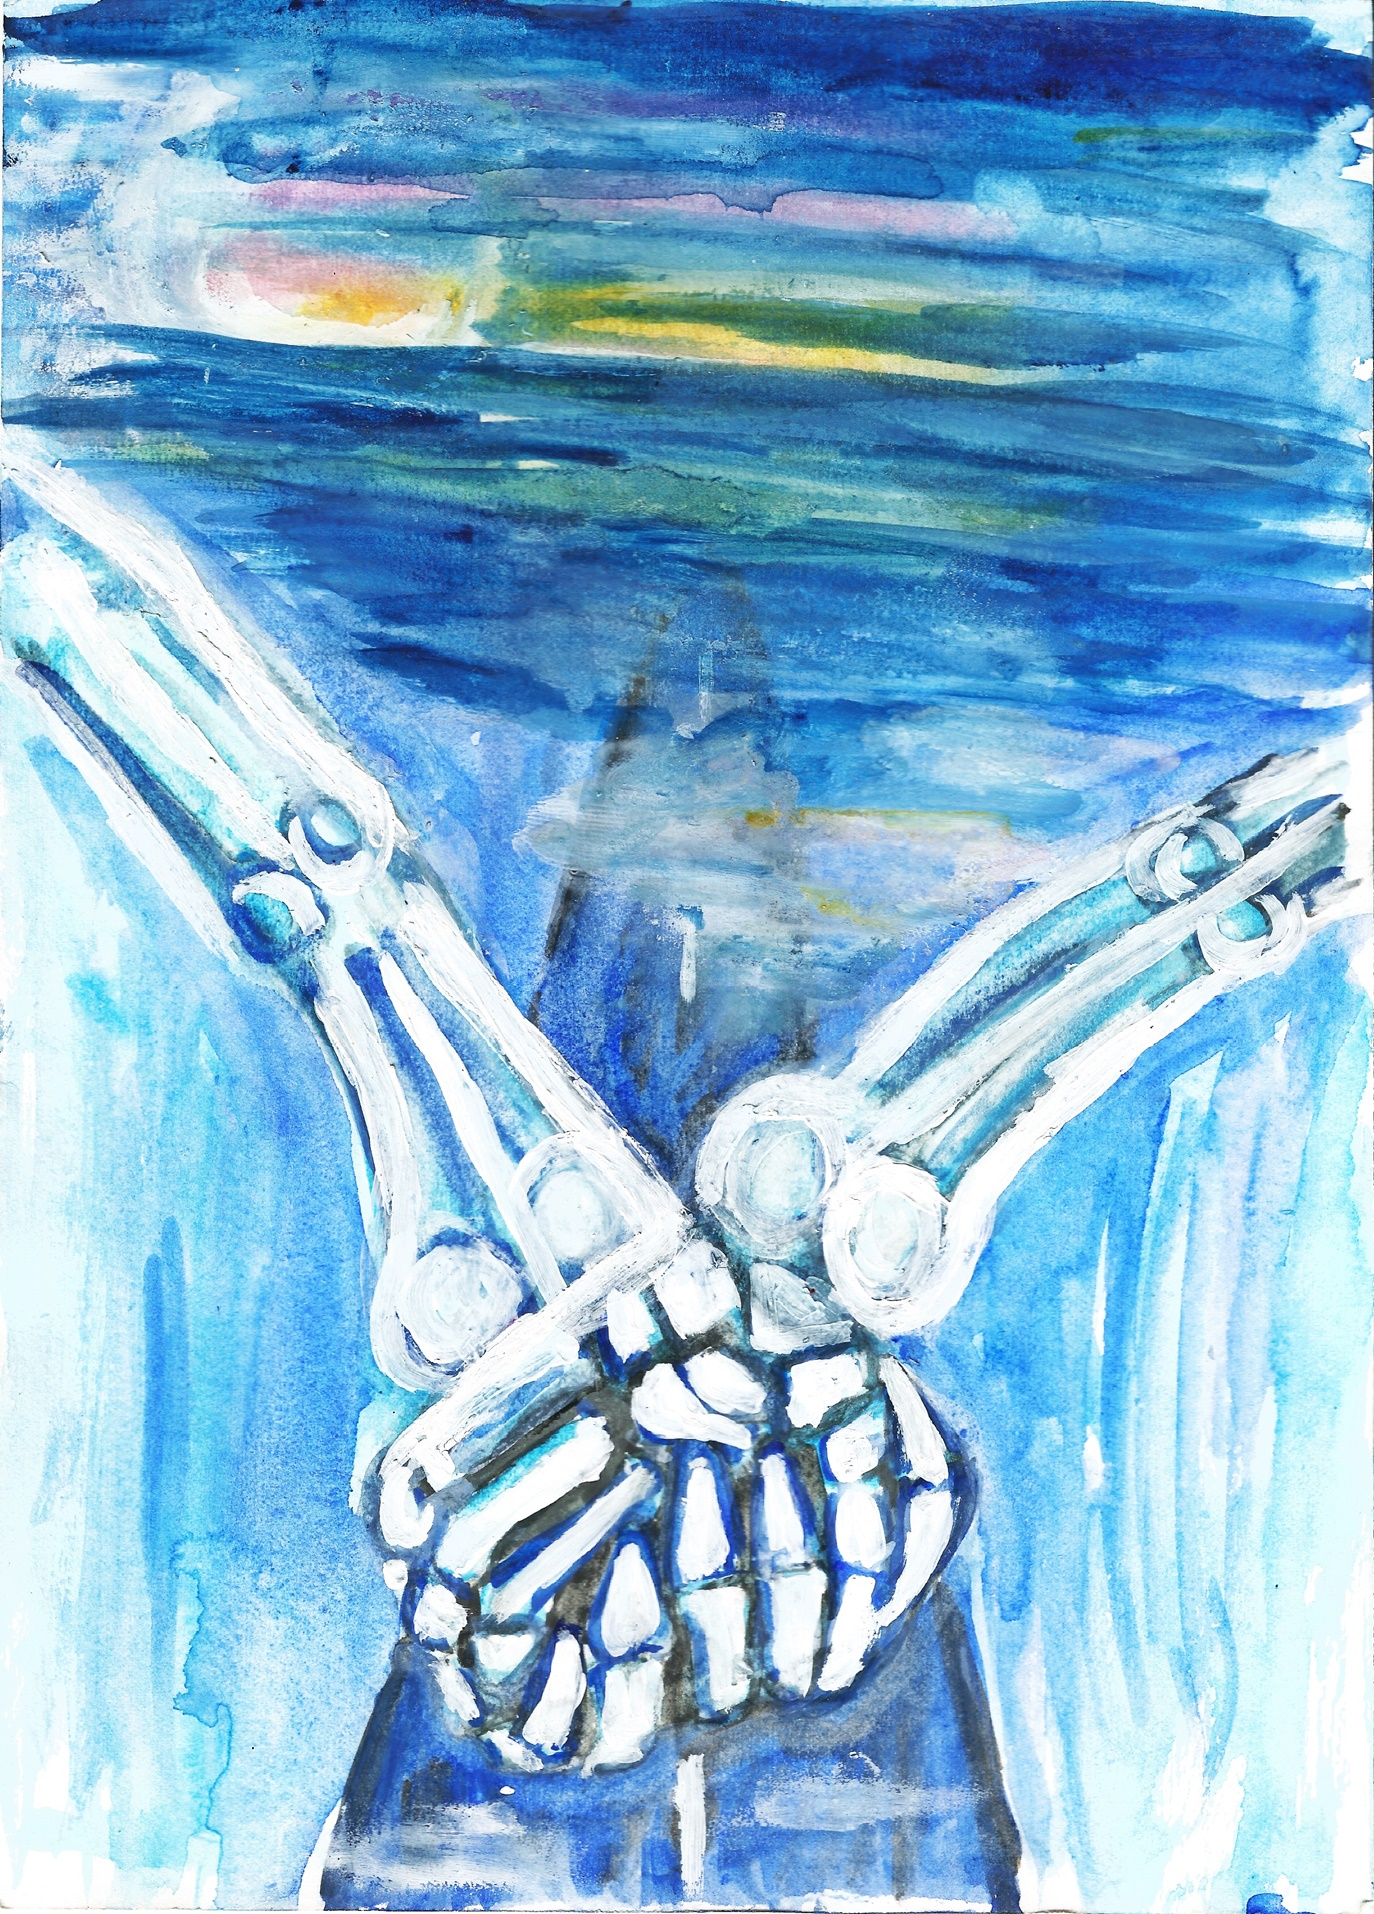 Print, Skelly love, holding hands